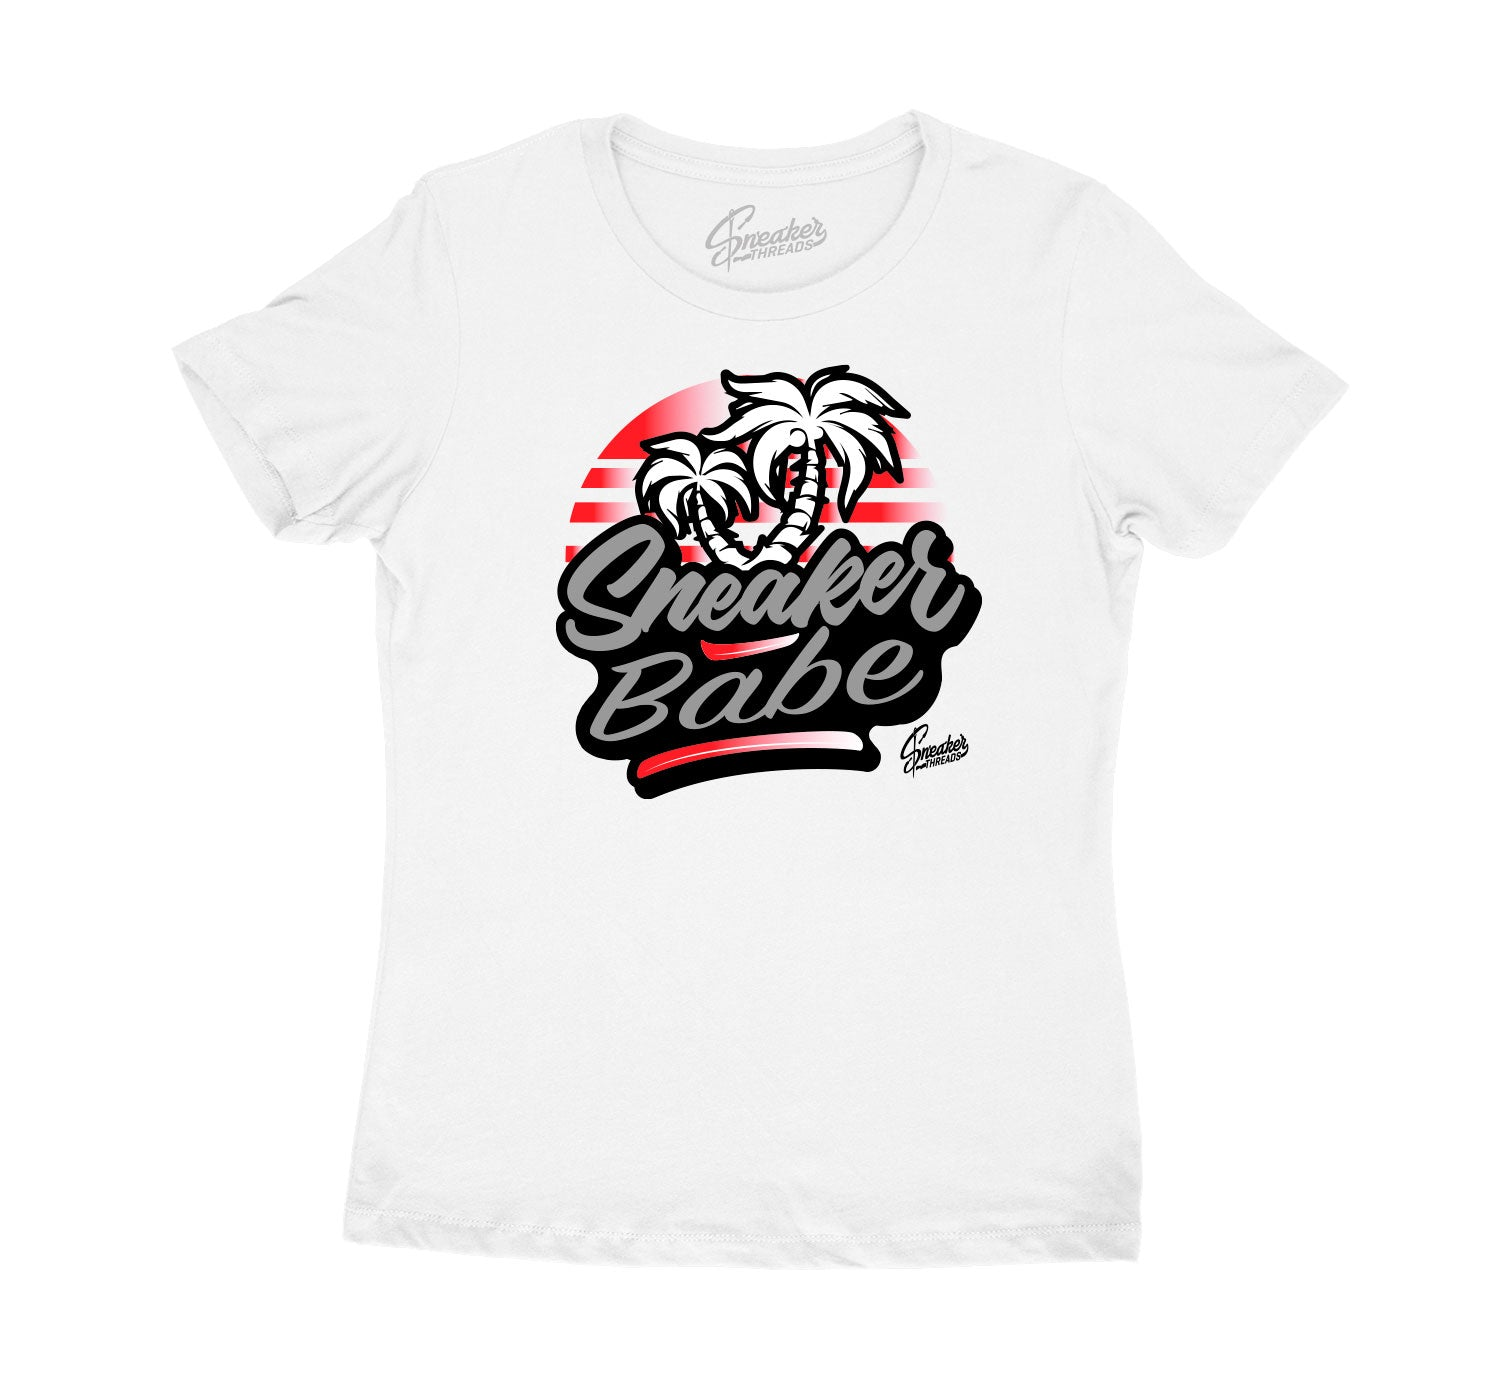 Womens Red Cement 3 Shirt - Sneaker Babe Palms - White